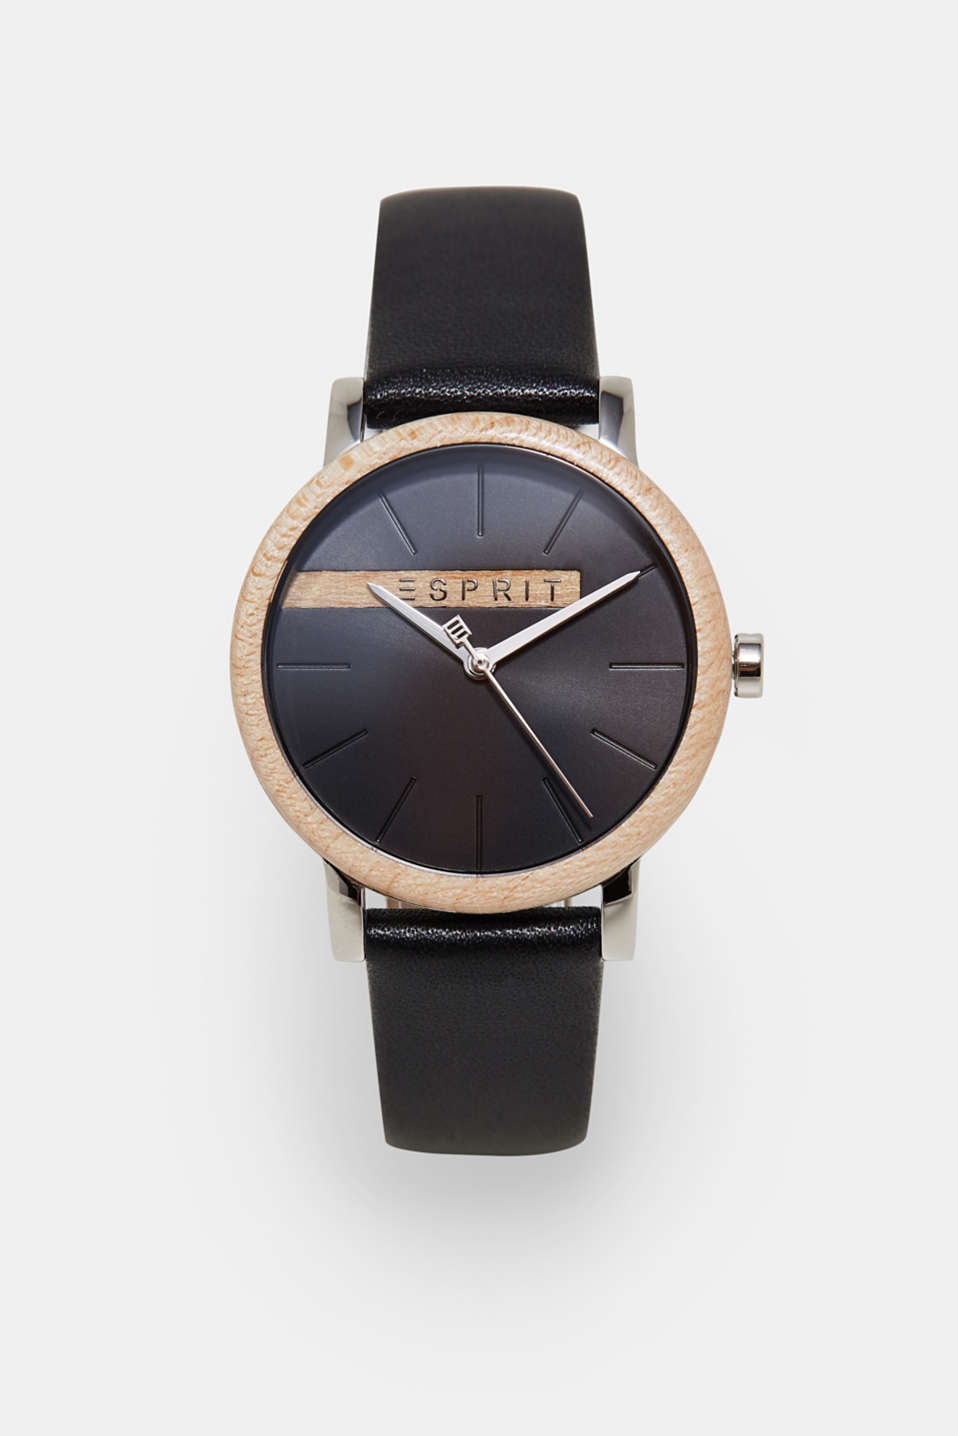 Esprit - Wood-trim watch + leather strap